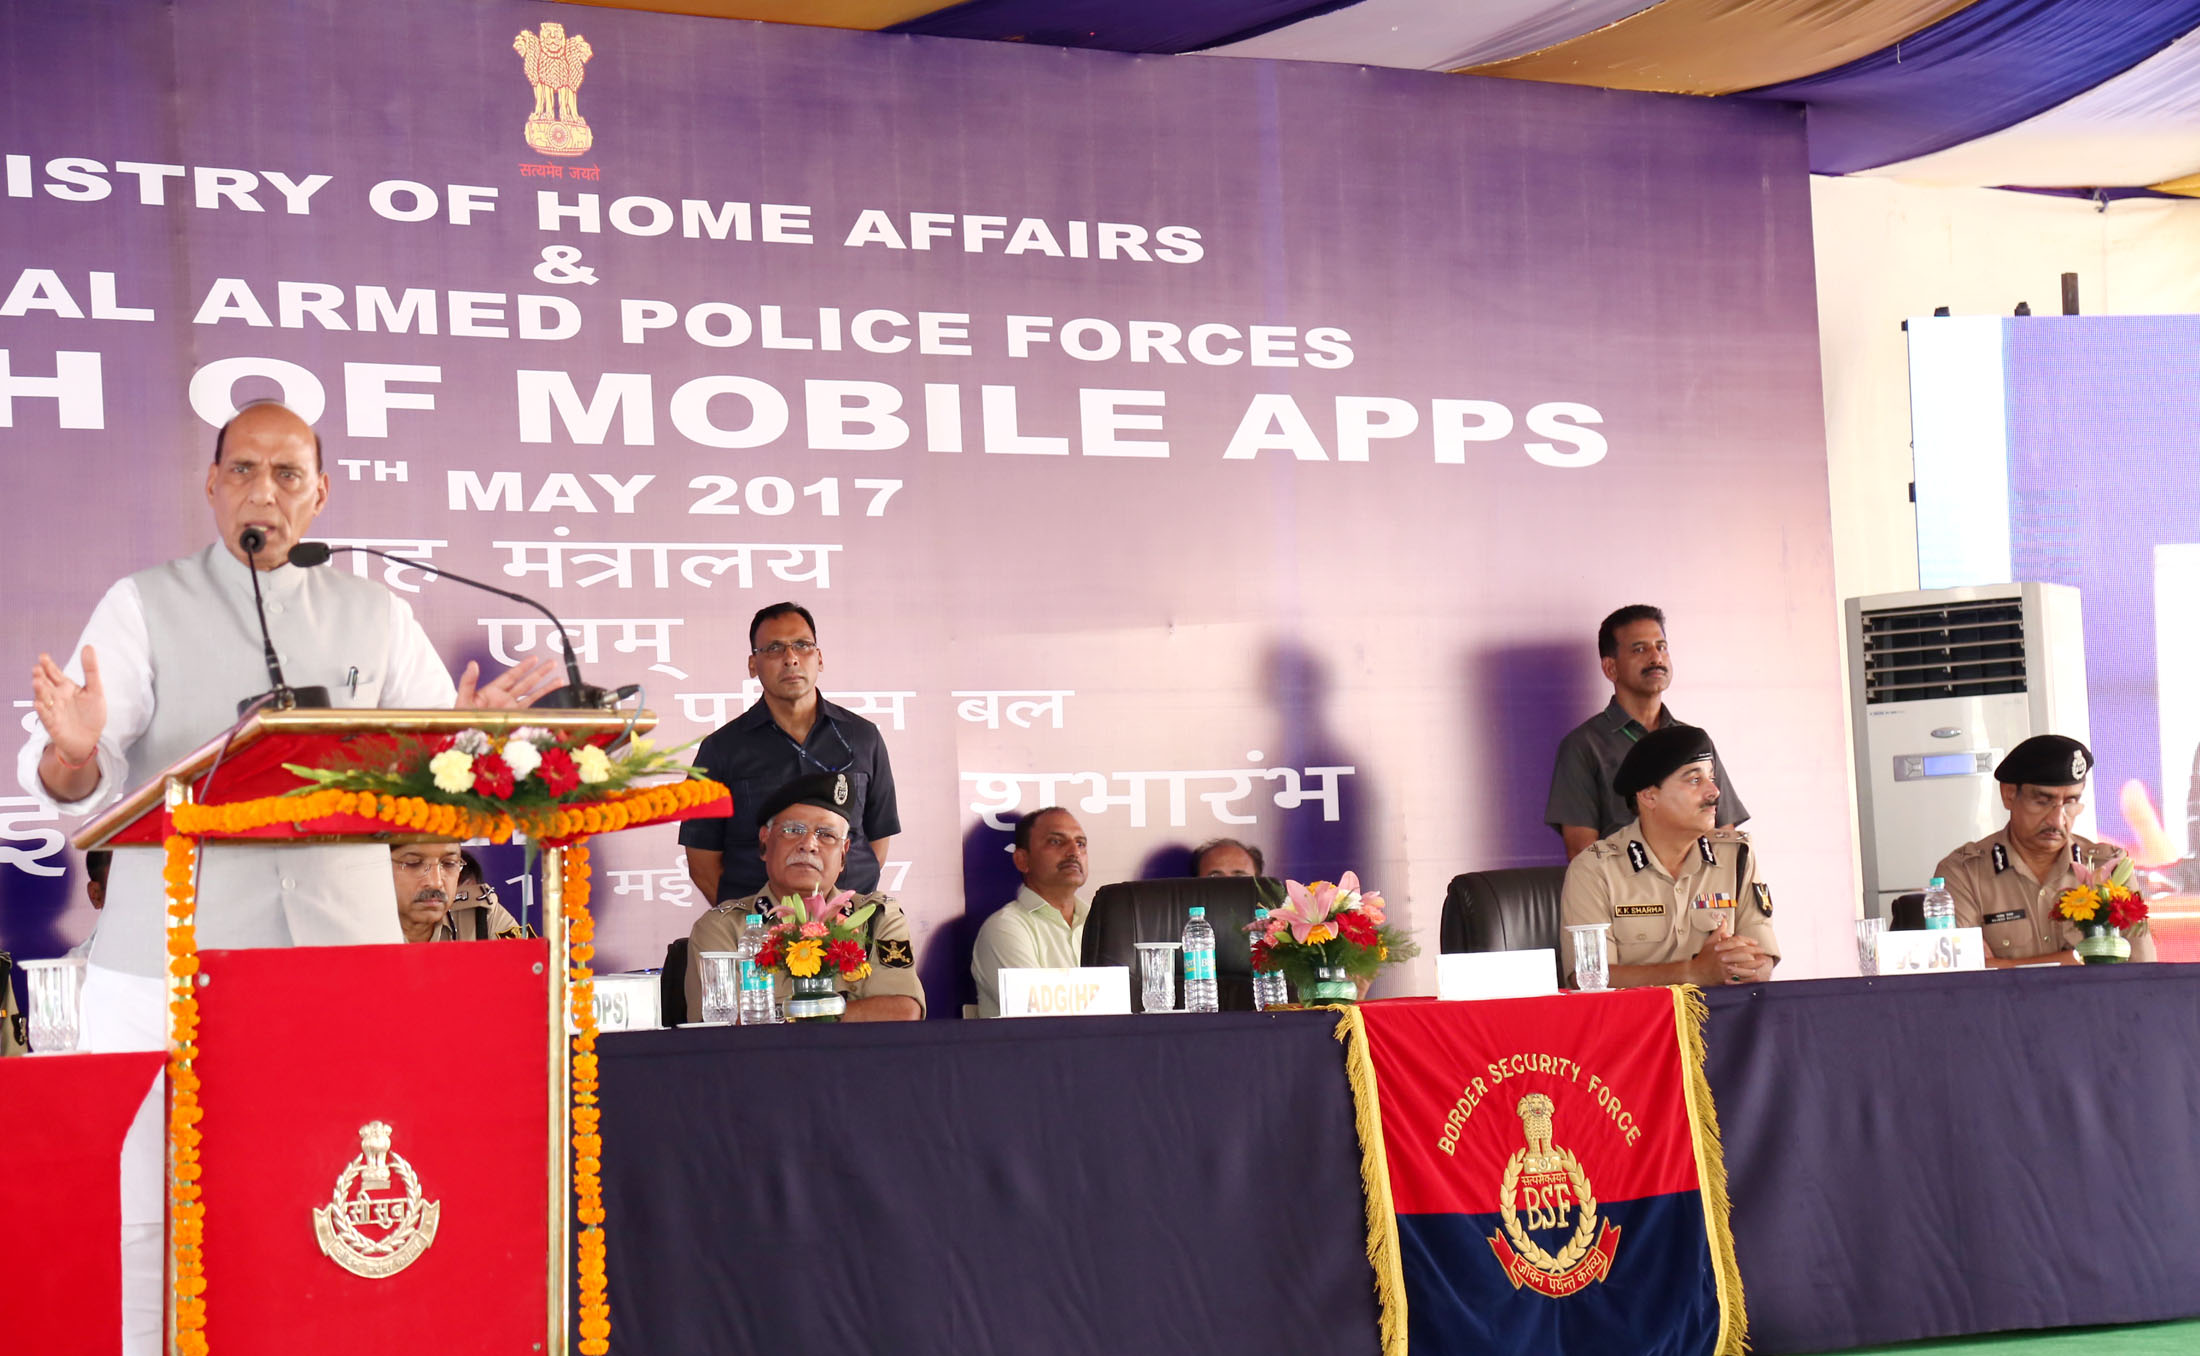 The Union Home Minister, Shri Rajnath Singh addressing at the launch of MHA Mobile Application (Grievances Redressal App) and BSFMyApp, in New Delhi on May 11, 2017.